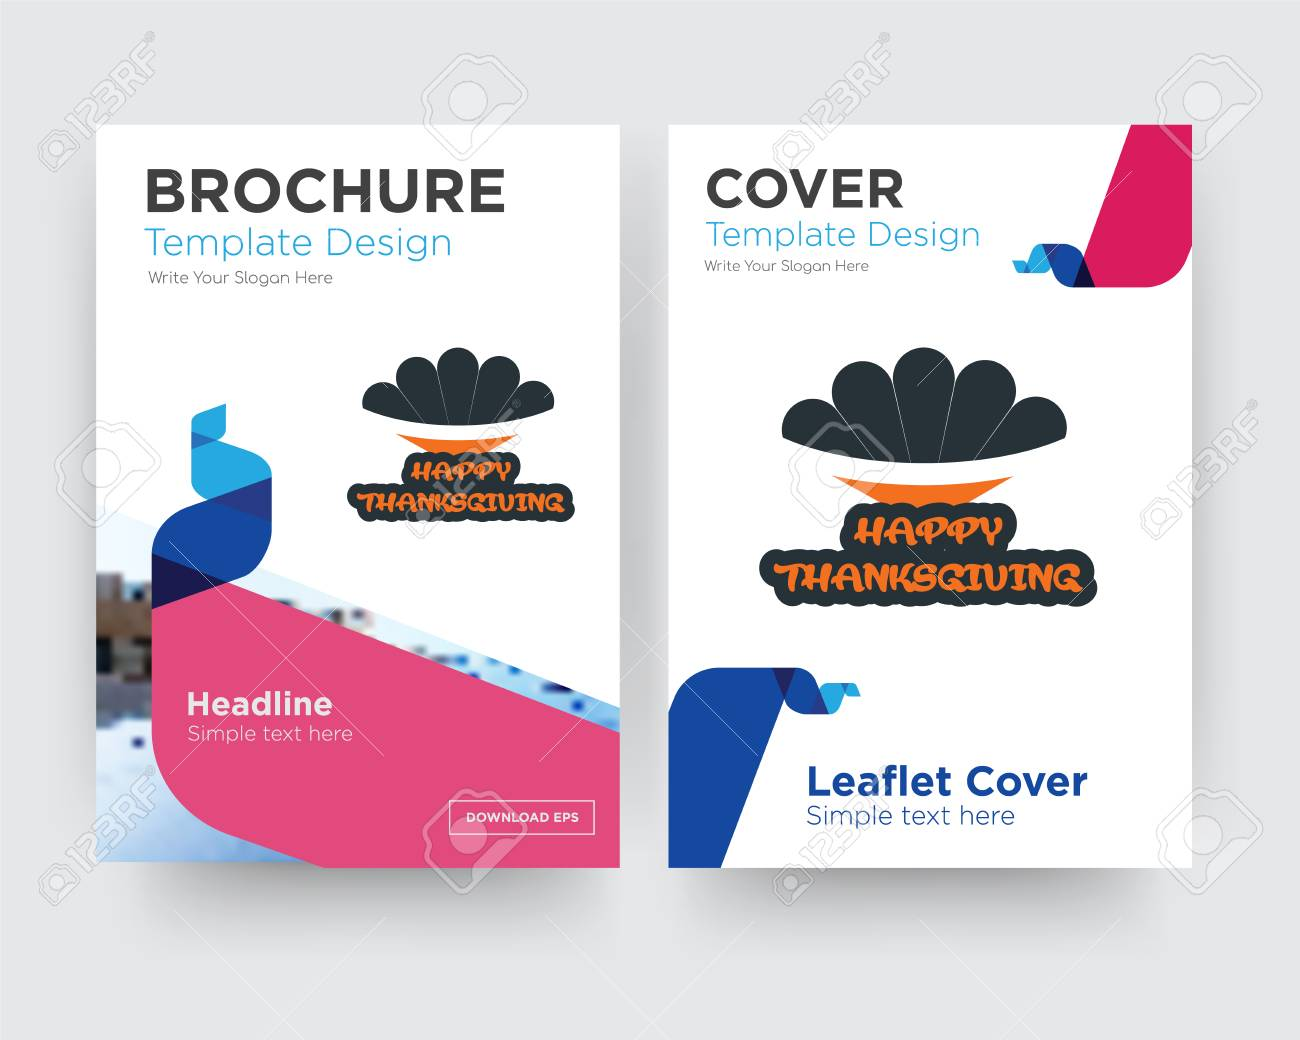 Happy Thanksgiving Brochure Flyer Design Template With Abstract